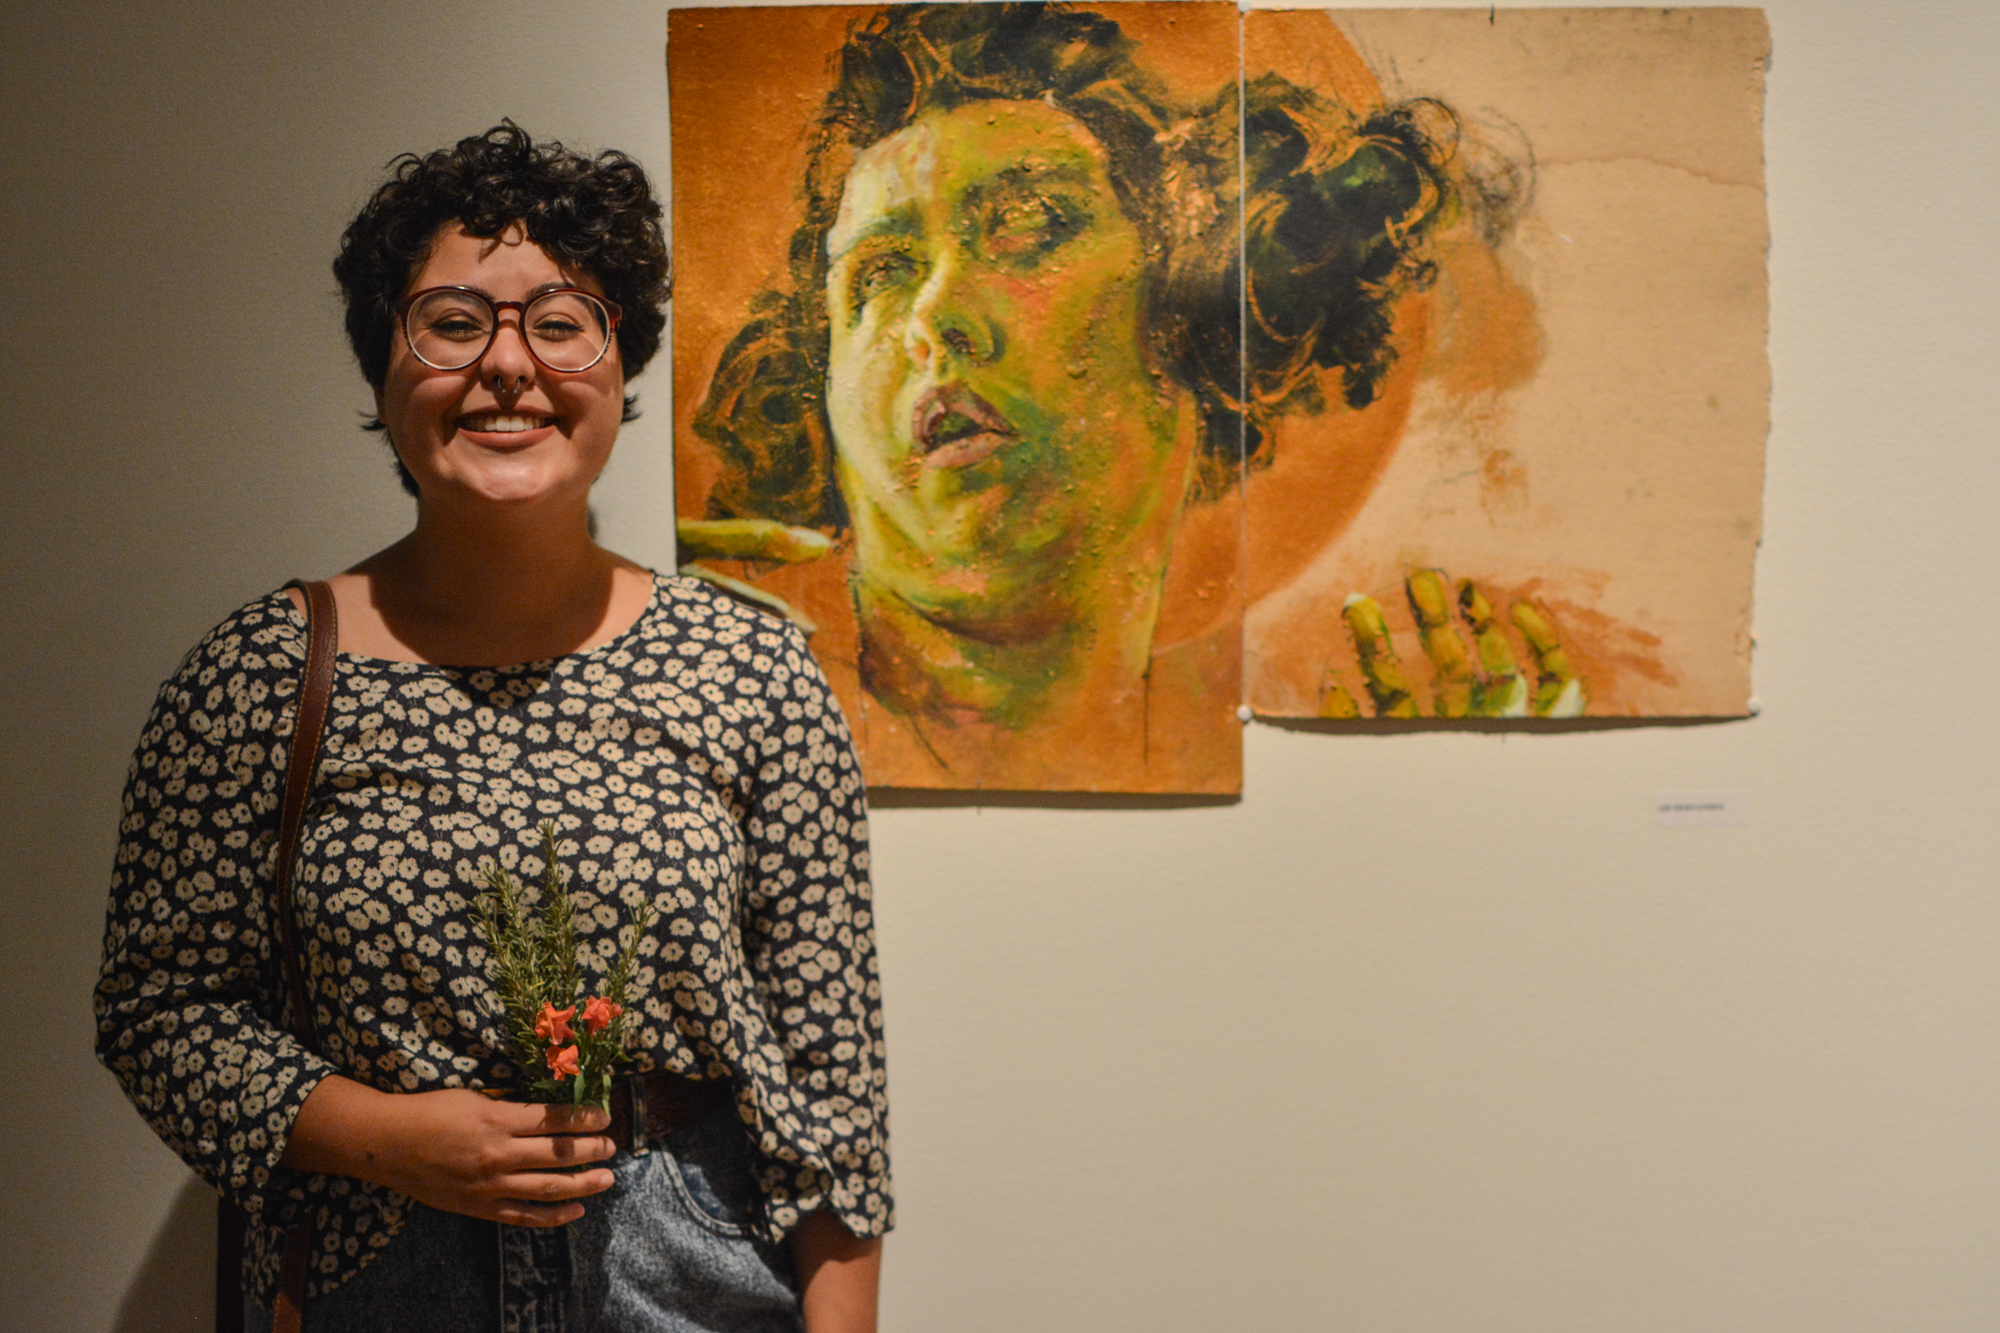 Abi Hernandez smiles widely near her piece at the Study Abroad Art Show in the Visual Art Center. Her art piece is made on cardboard she found lying around in Italy.